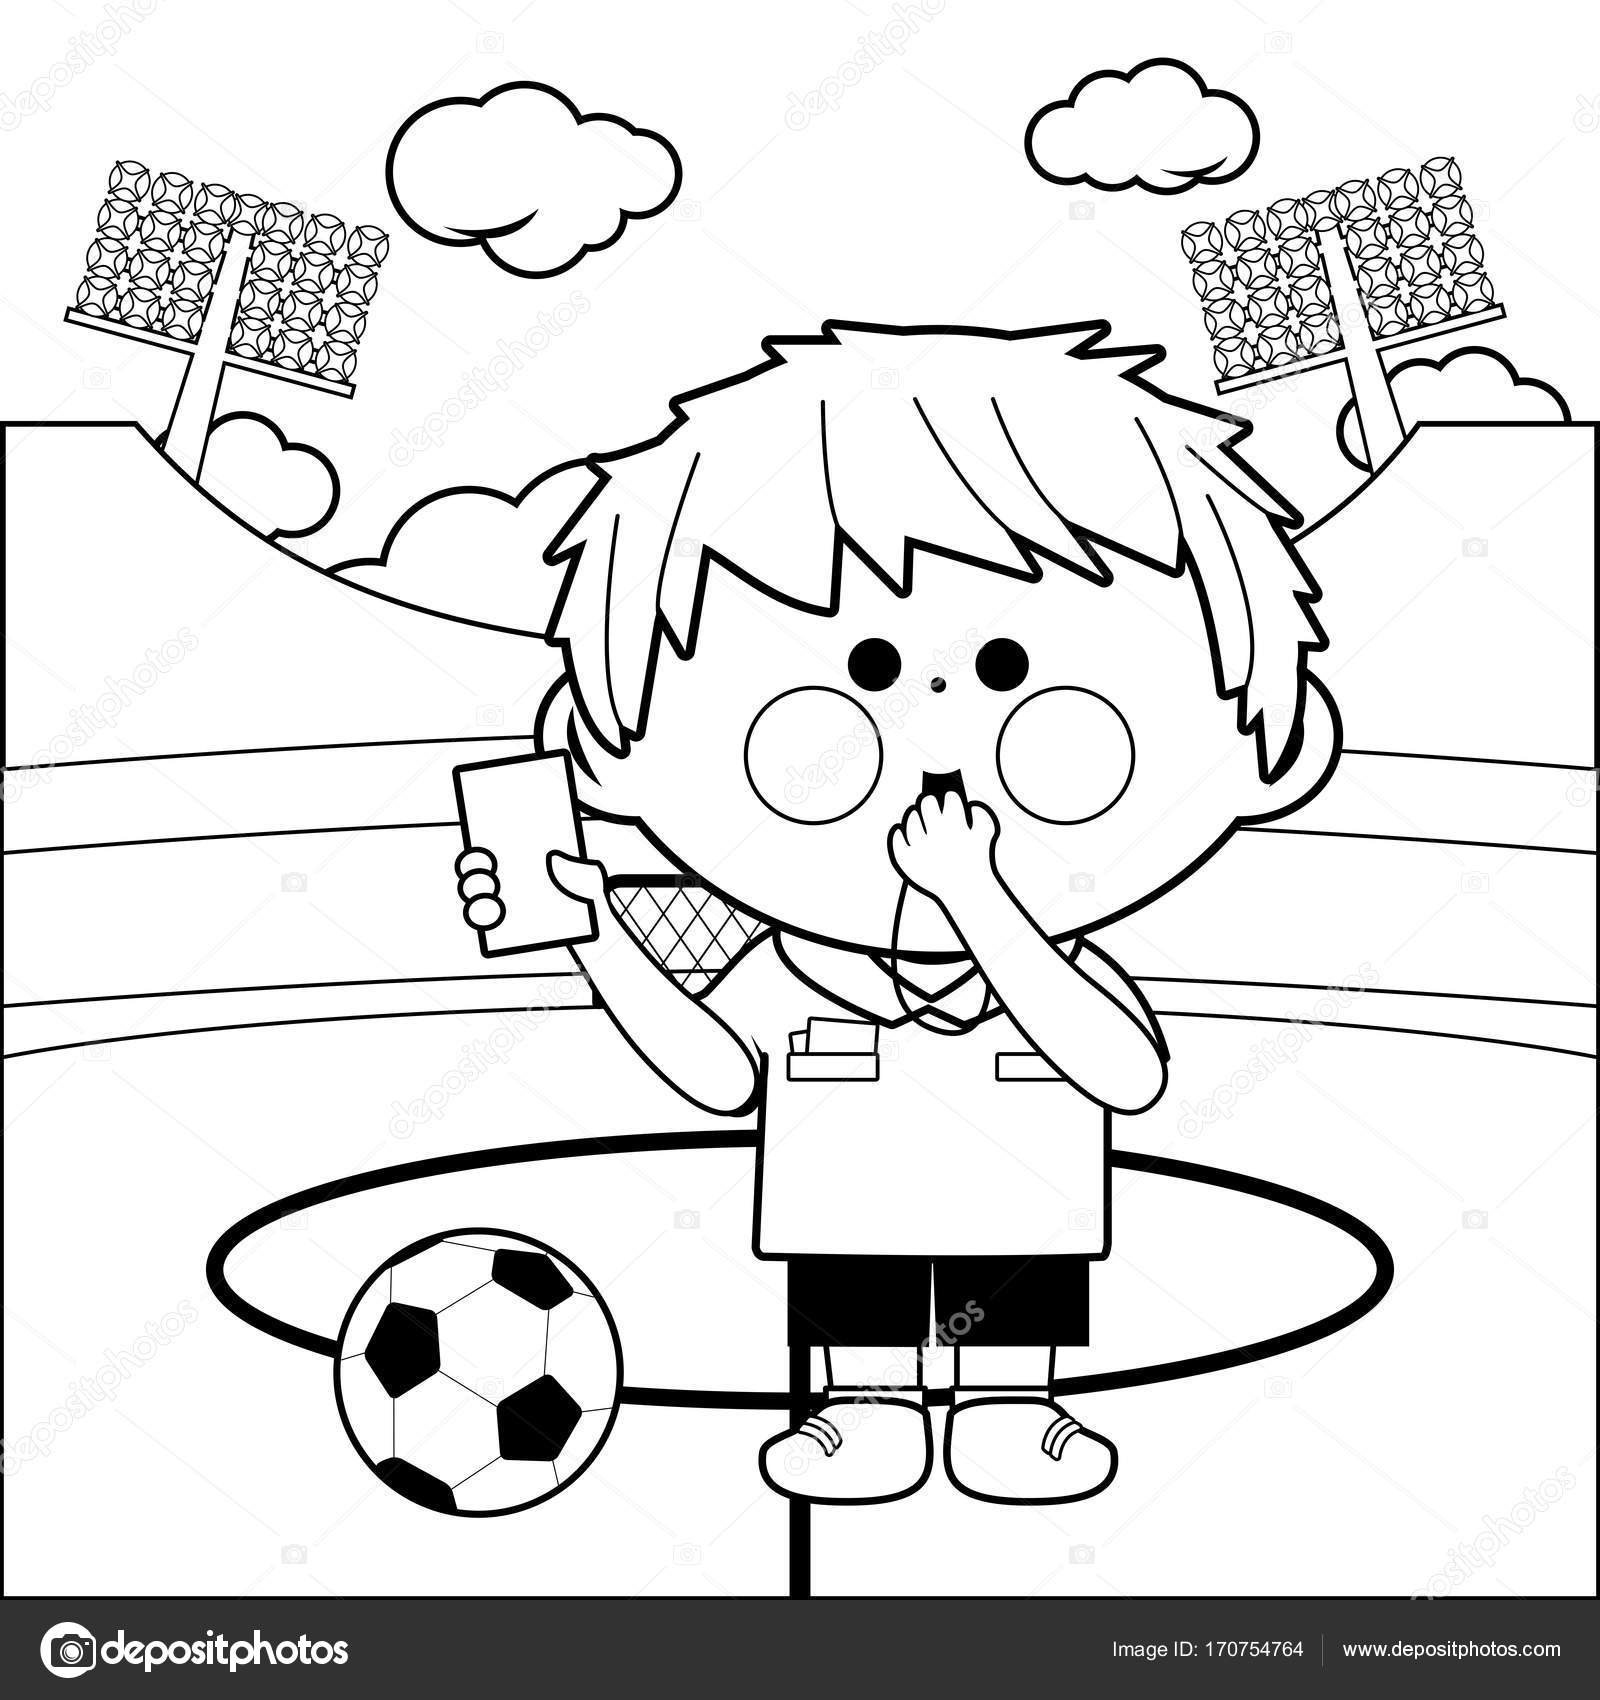 The Best Free Referee Drawing Images Download From 19